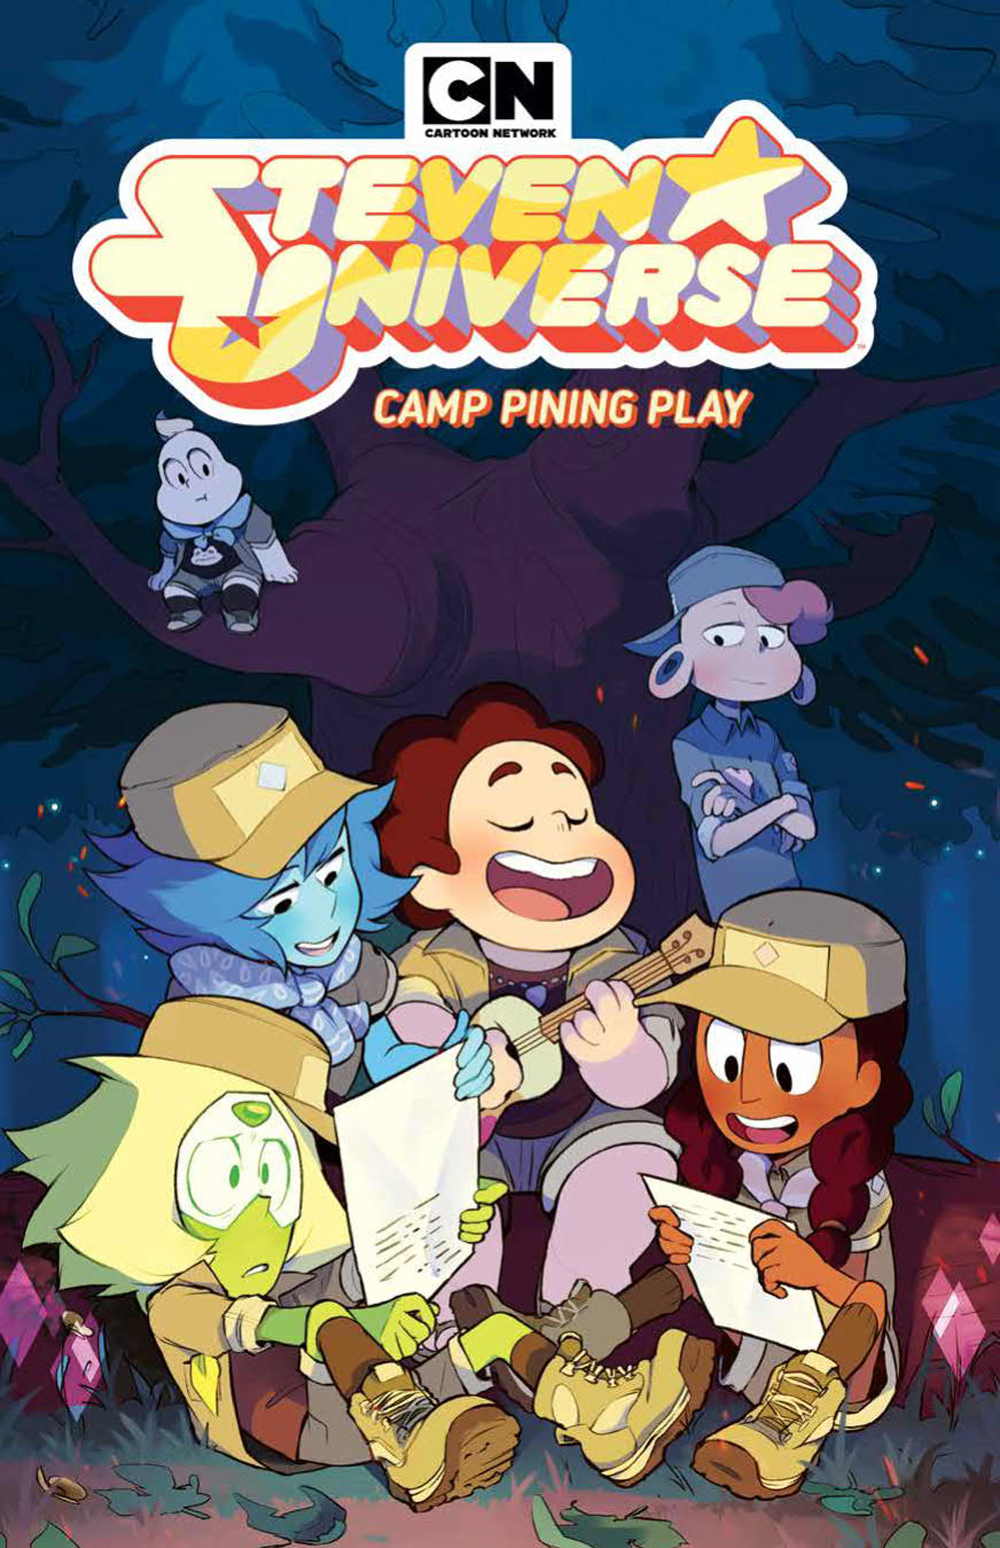 STEVEN UNIVERSE ORIGINAL GN VOL 04 CAMP PINING PLAY